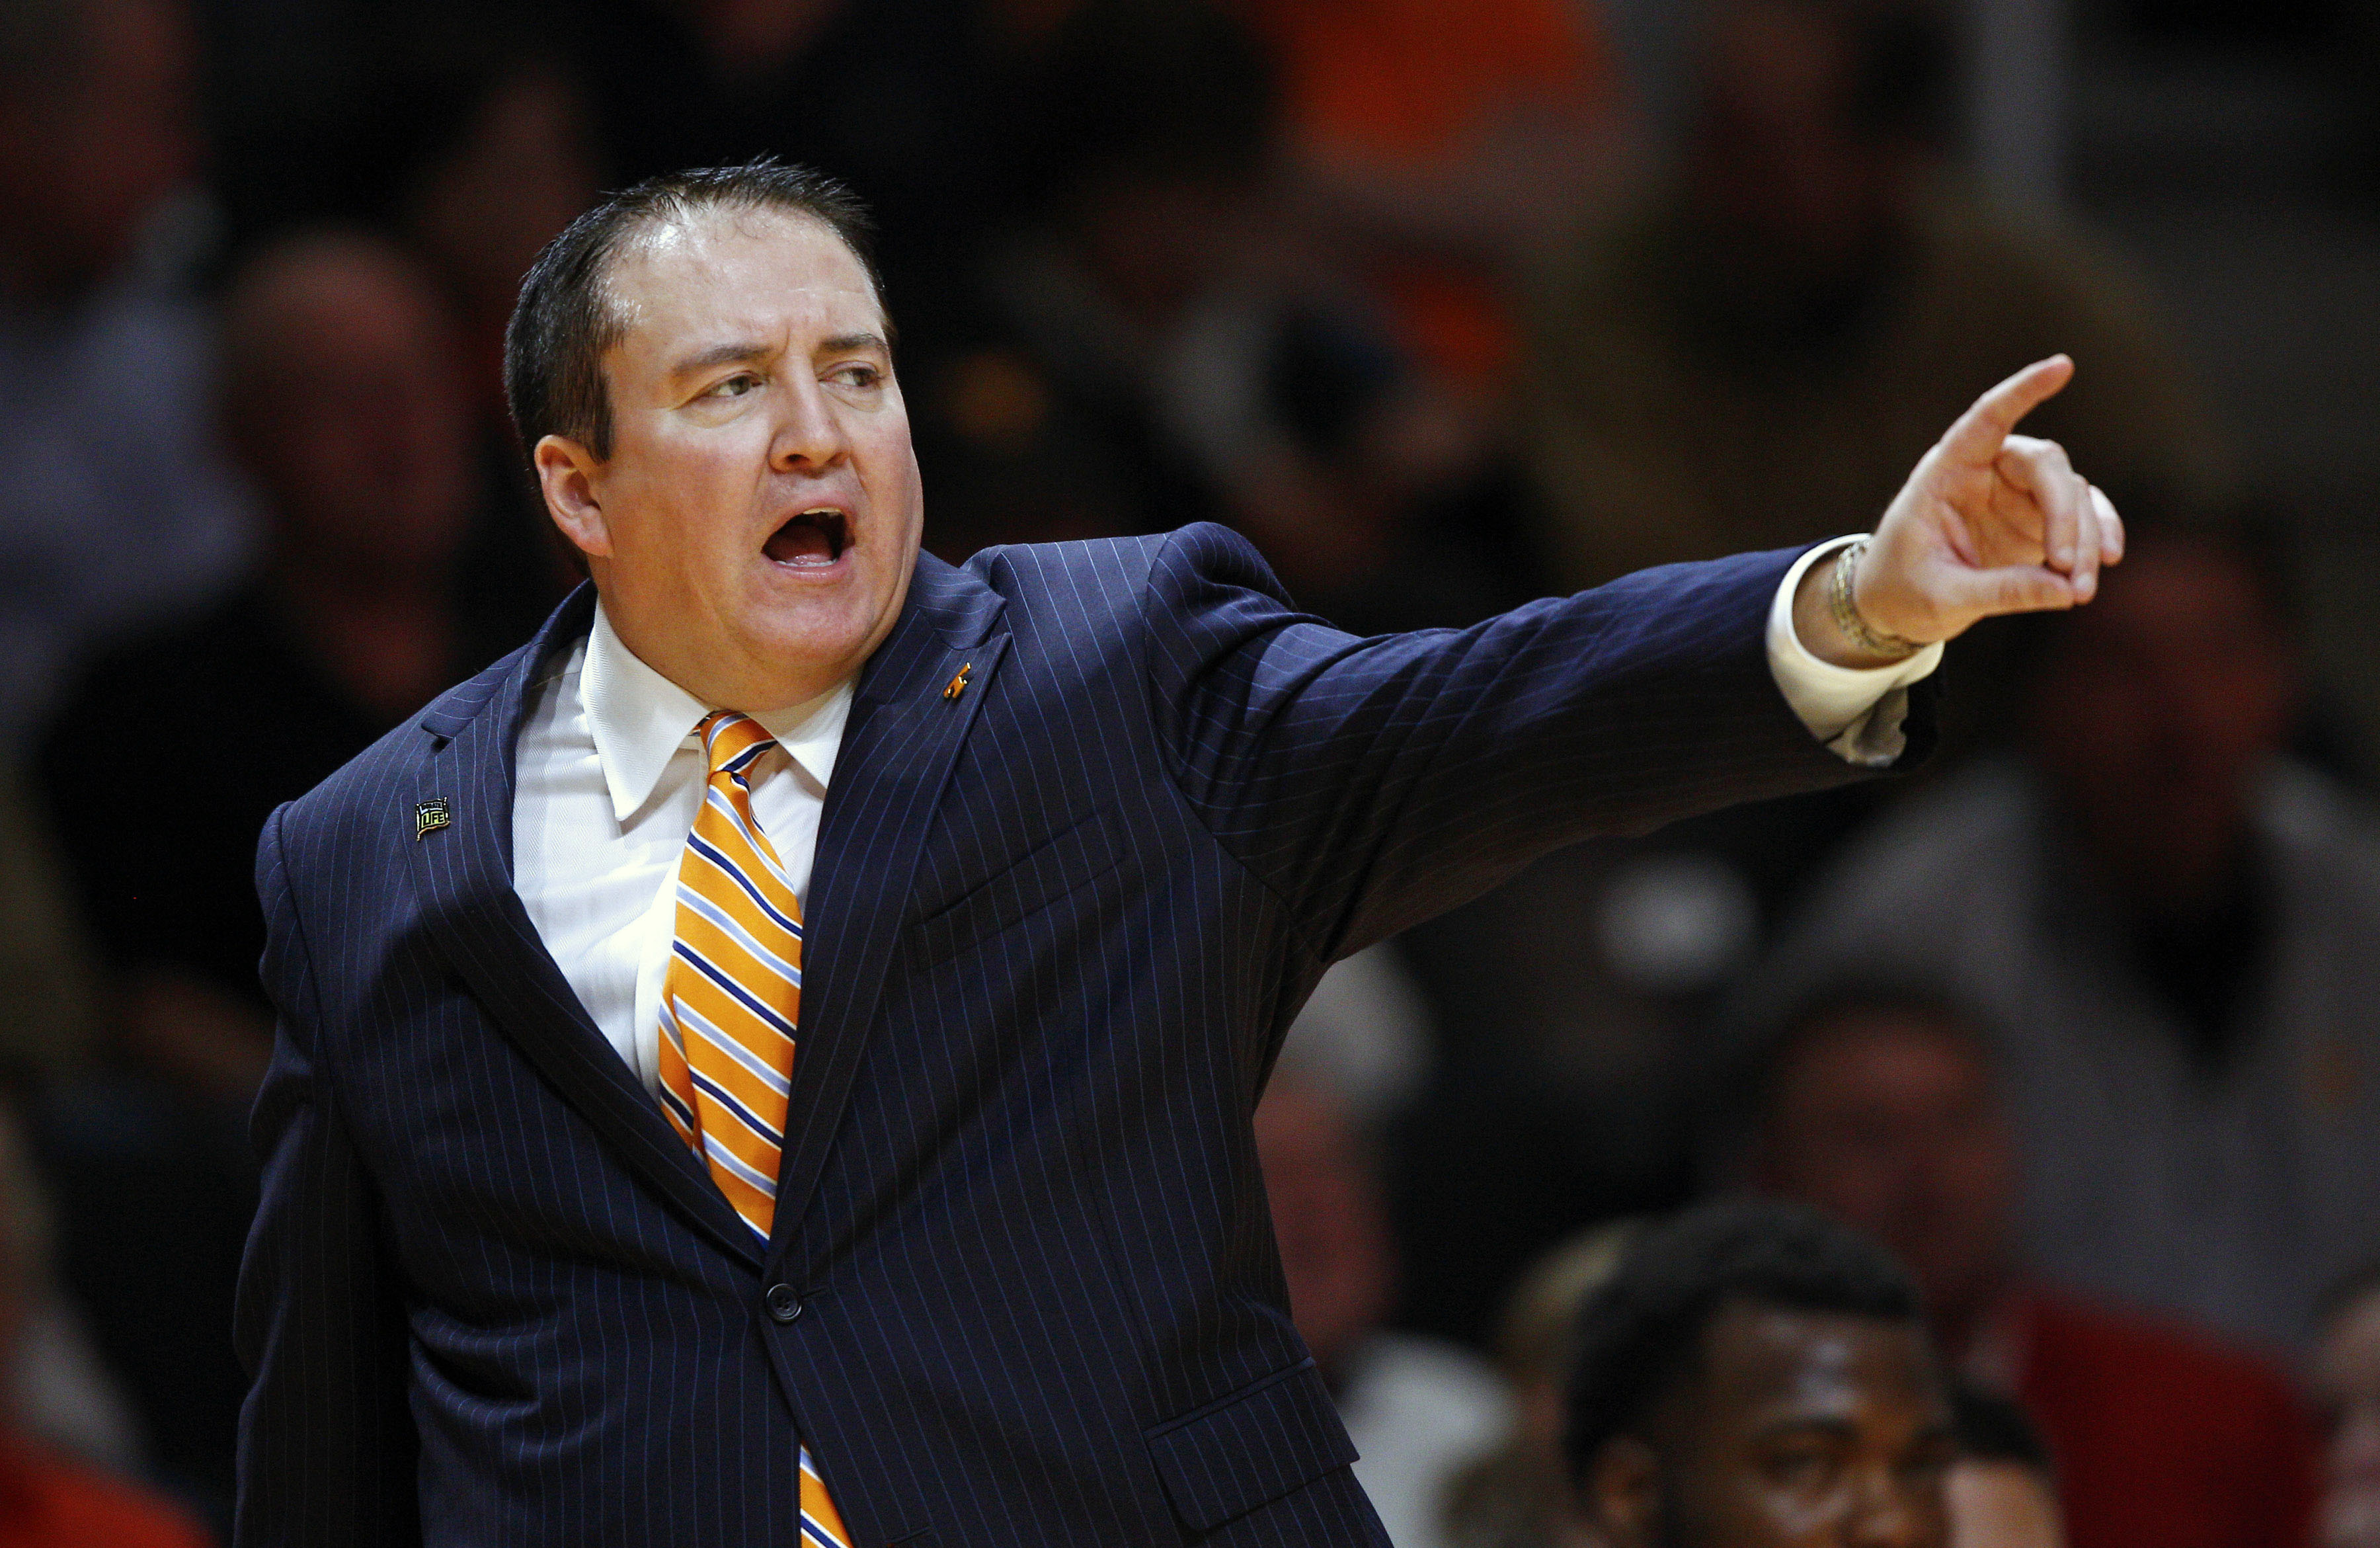 FILE - In this Monday, Nov. 3, 2014 file photo, Tennessee head coach Donnie Tyndall in the second half of an NCAA college basketball game against Pikeville in Knoxville, Tenn. The NCAA says Southern Mississippi's men's basketball program and former coach